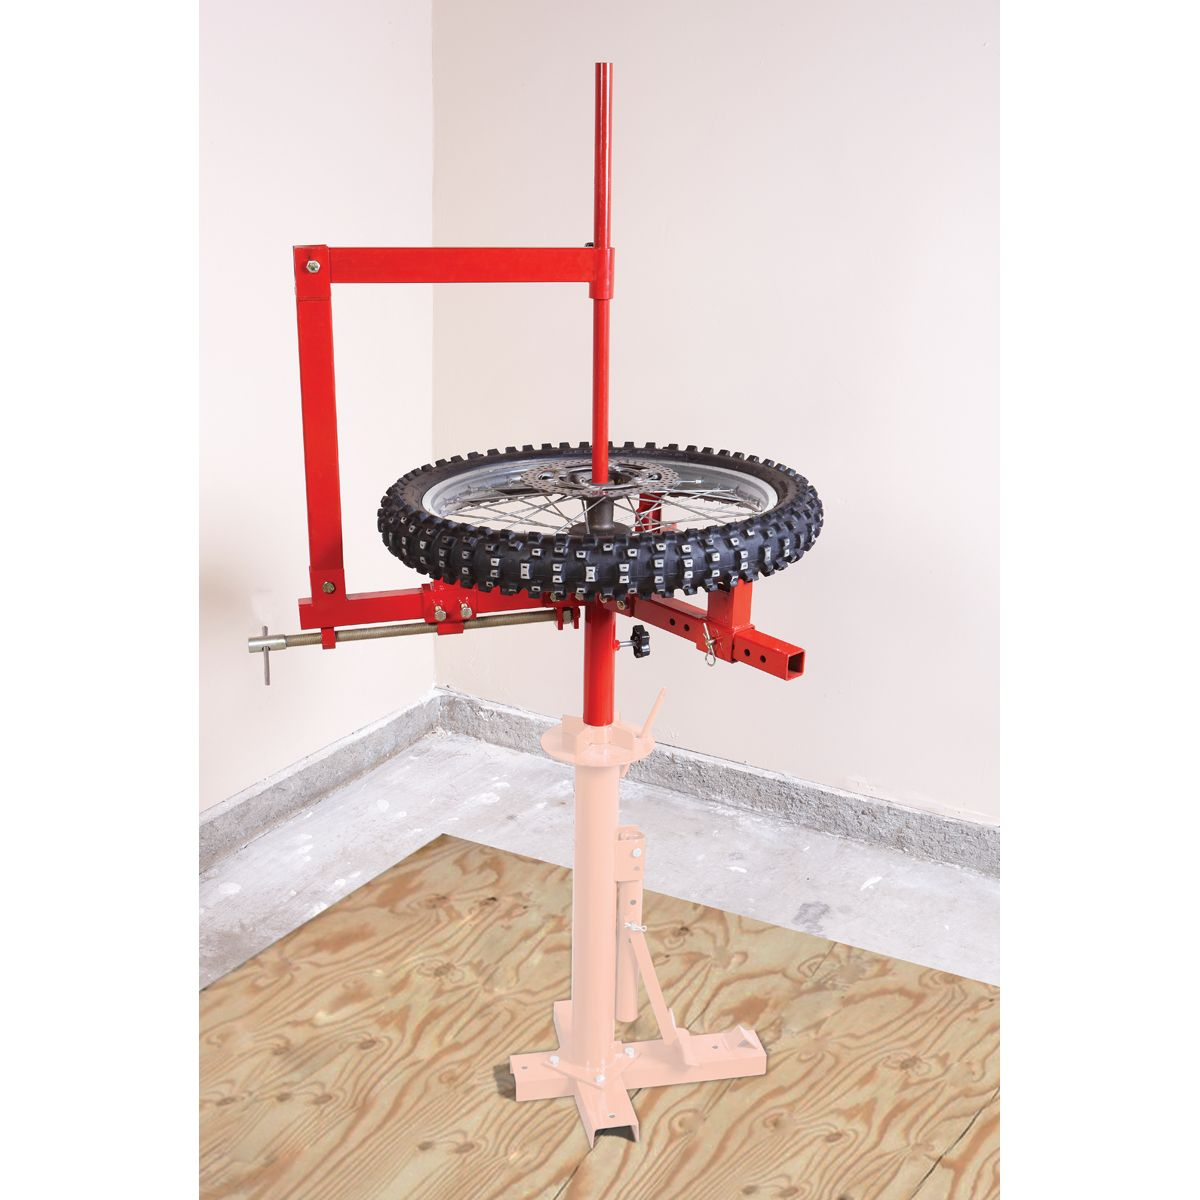 Motorcycle Tire Changer Attachment Motorcycle Tires Tire Motorcycle